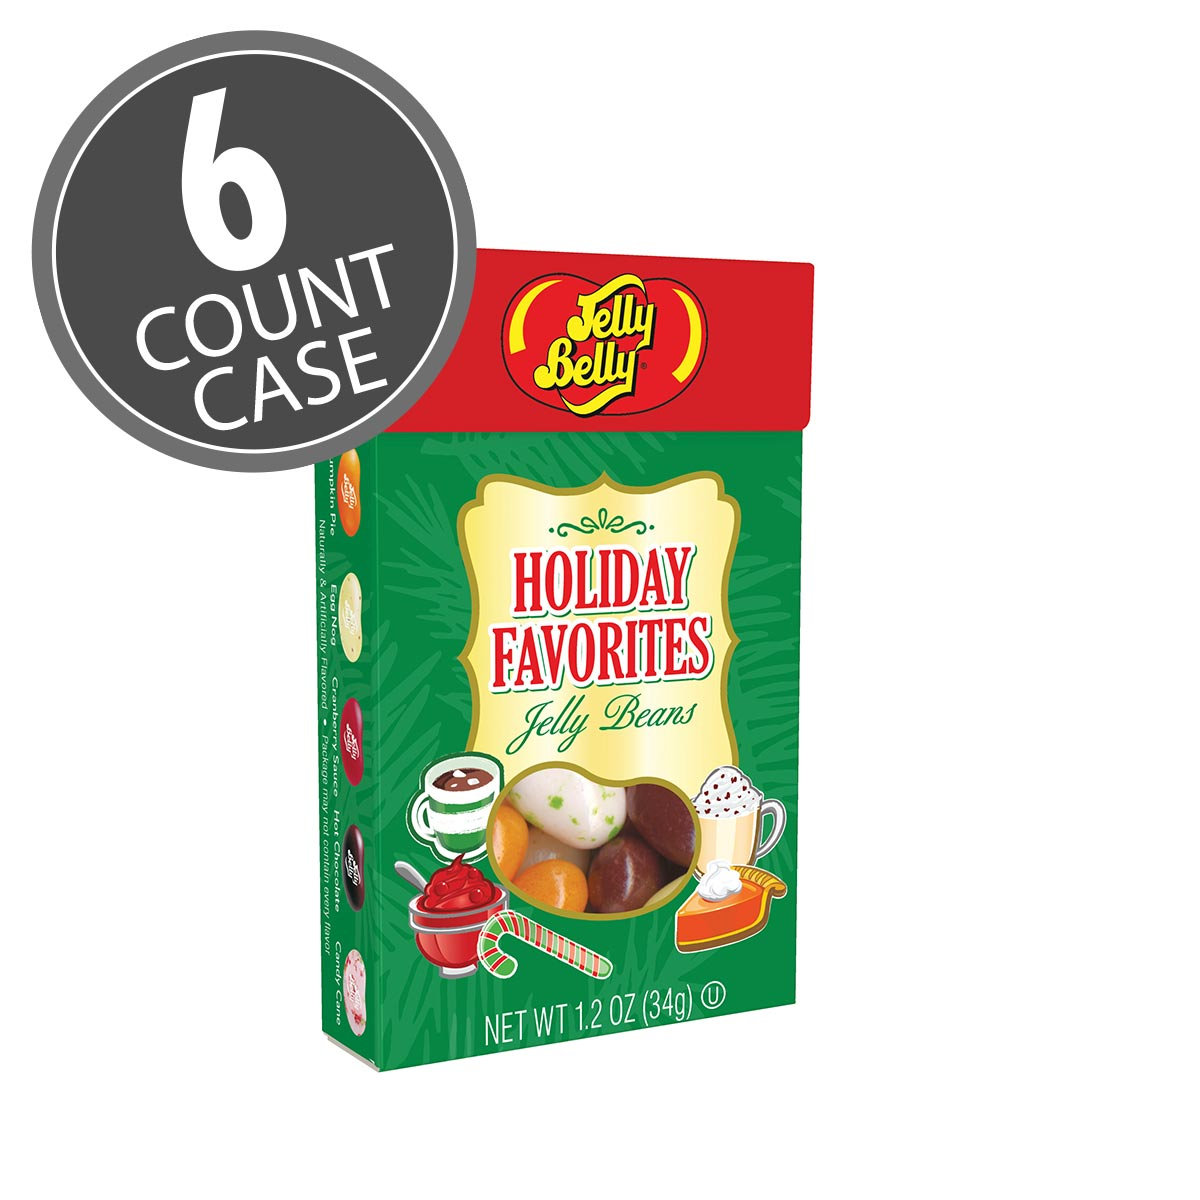 Holiday Favorites Jelly Bean 1.2 oz Flip Top Box - 6 Count Case